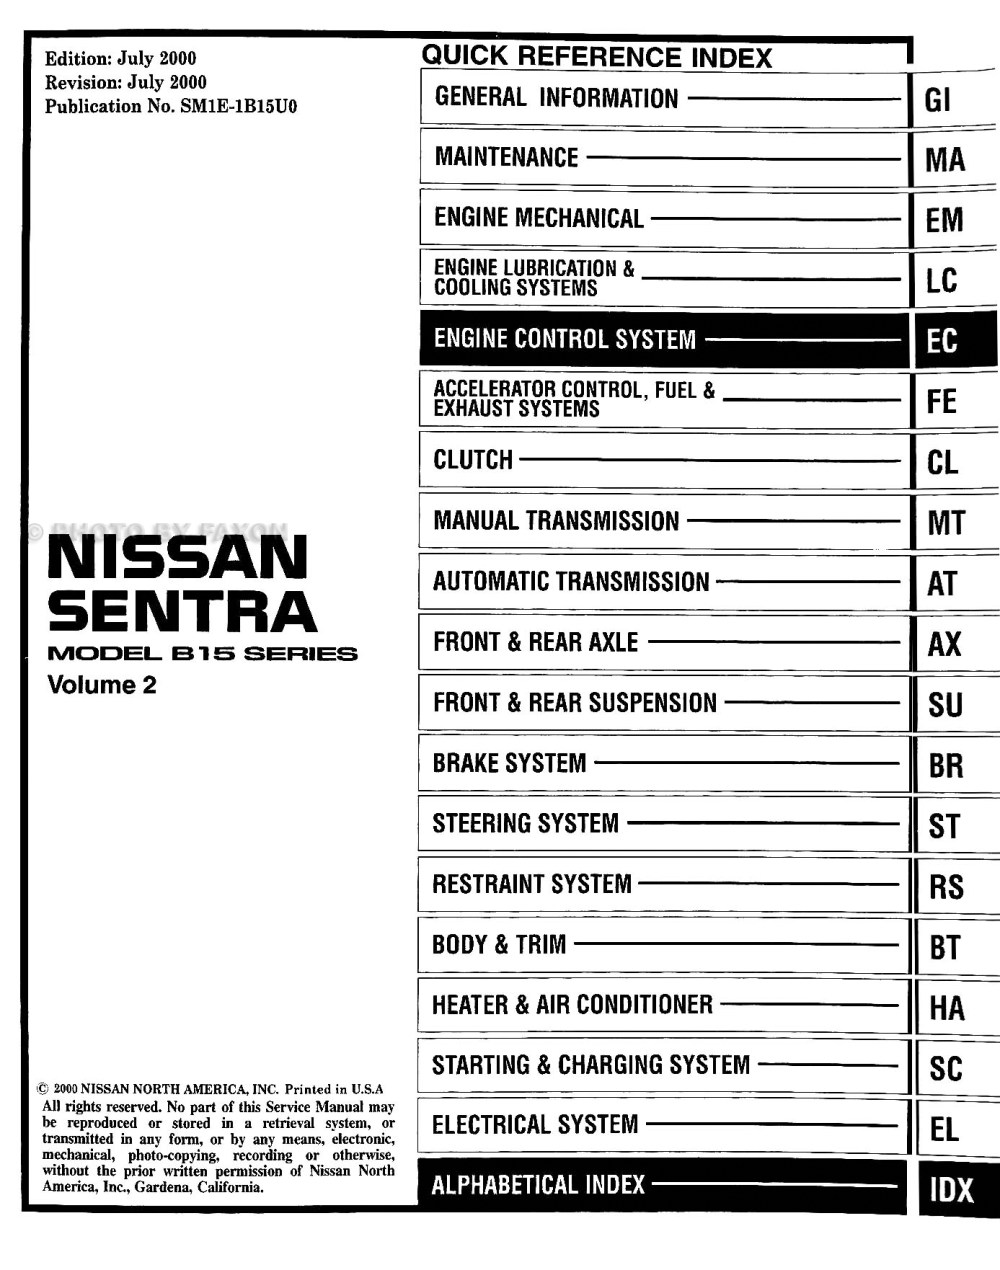 medium resolution of 1994 nissan sentra wiring diagram 1994 nissan sentra nissan sentra fuse box diagram nissan sentra wiring